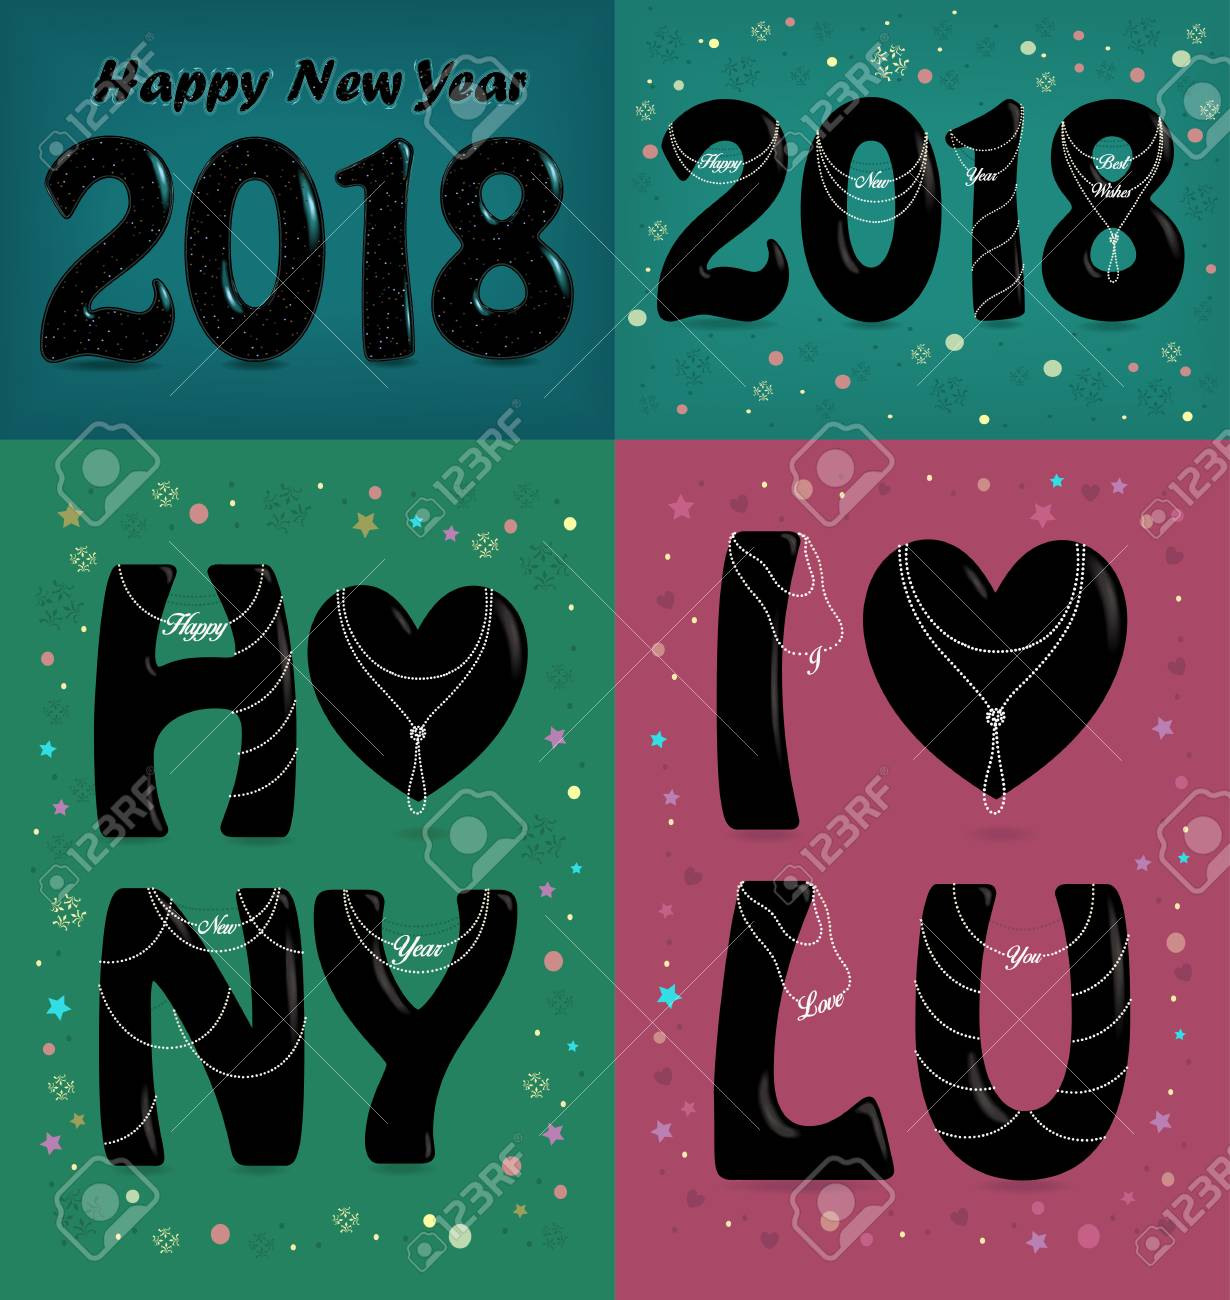 happy new year 2018 i love you four retro cards with black abbreviation by